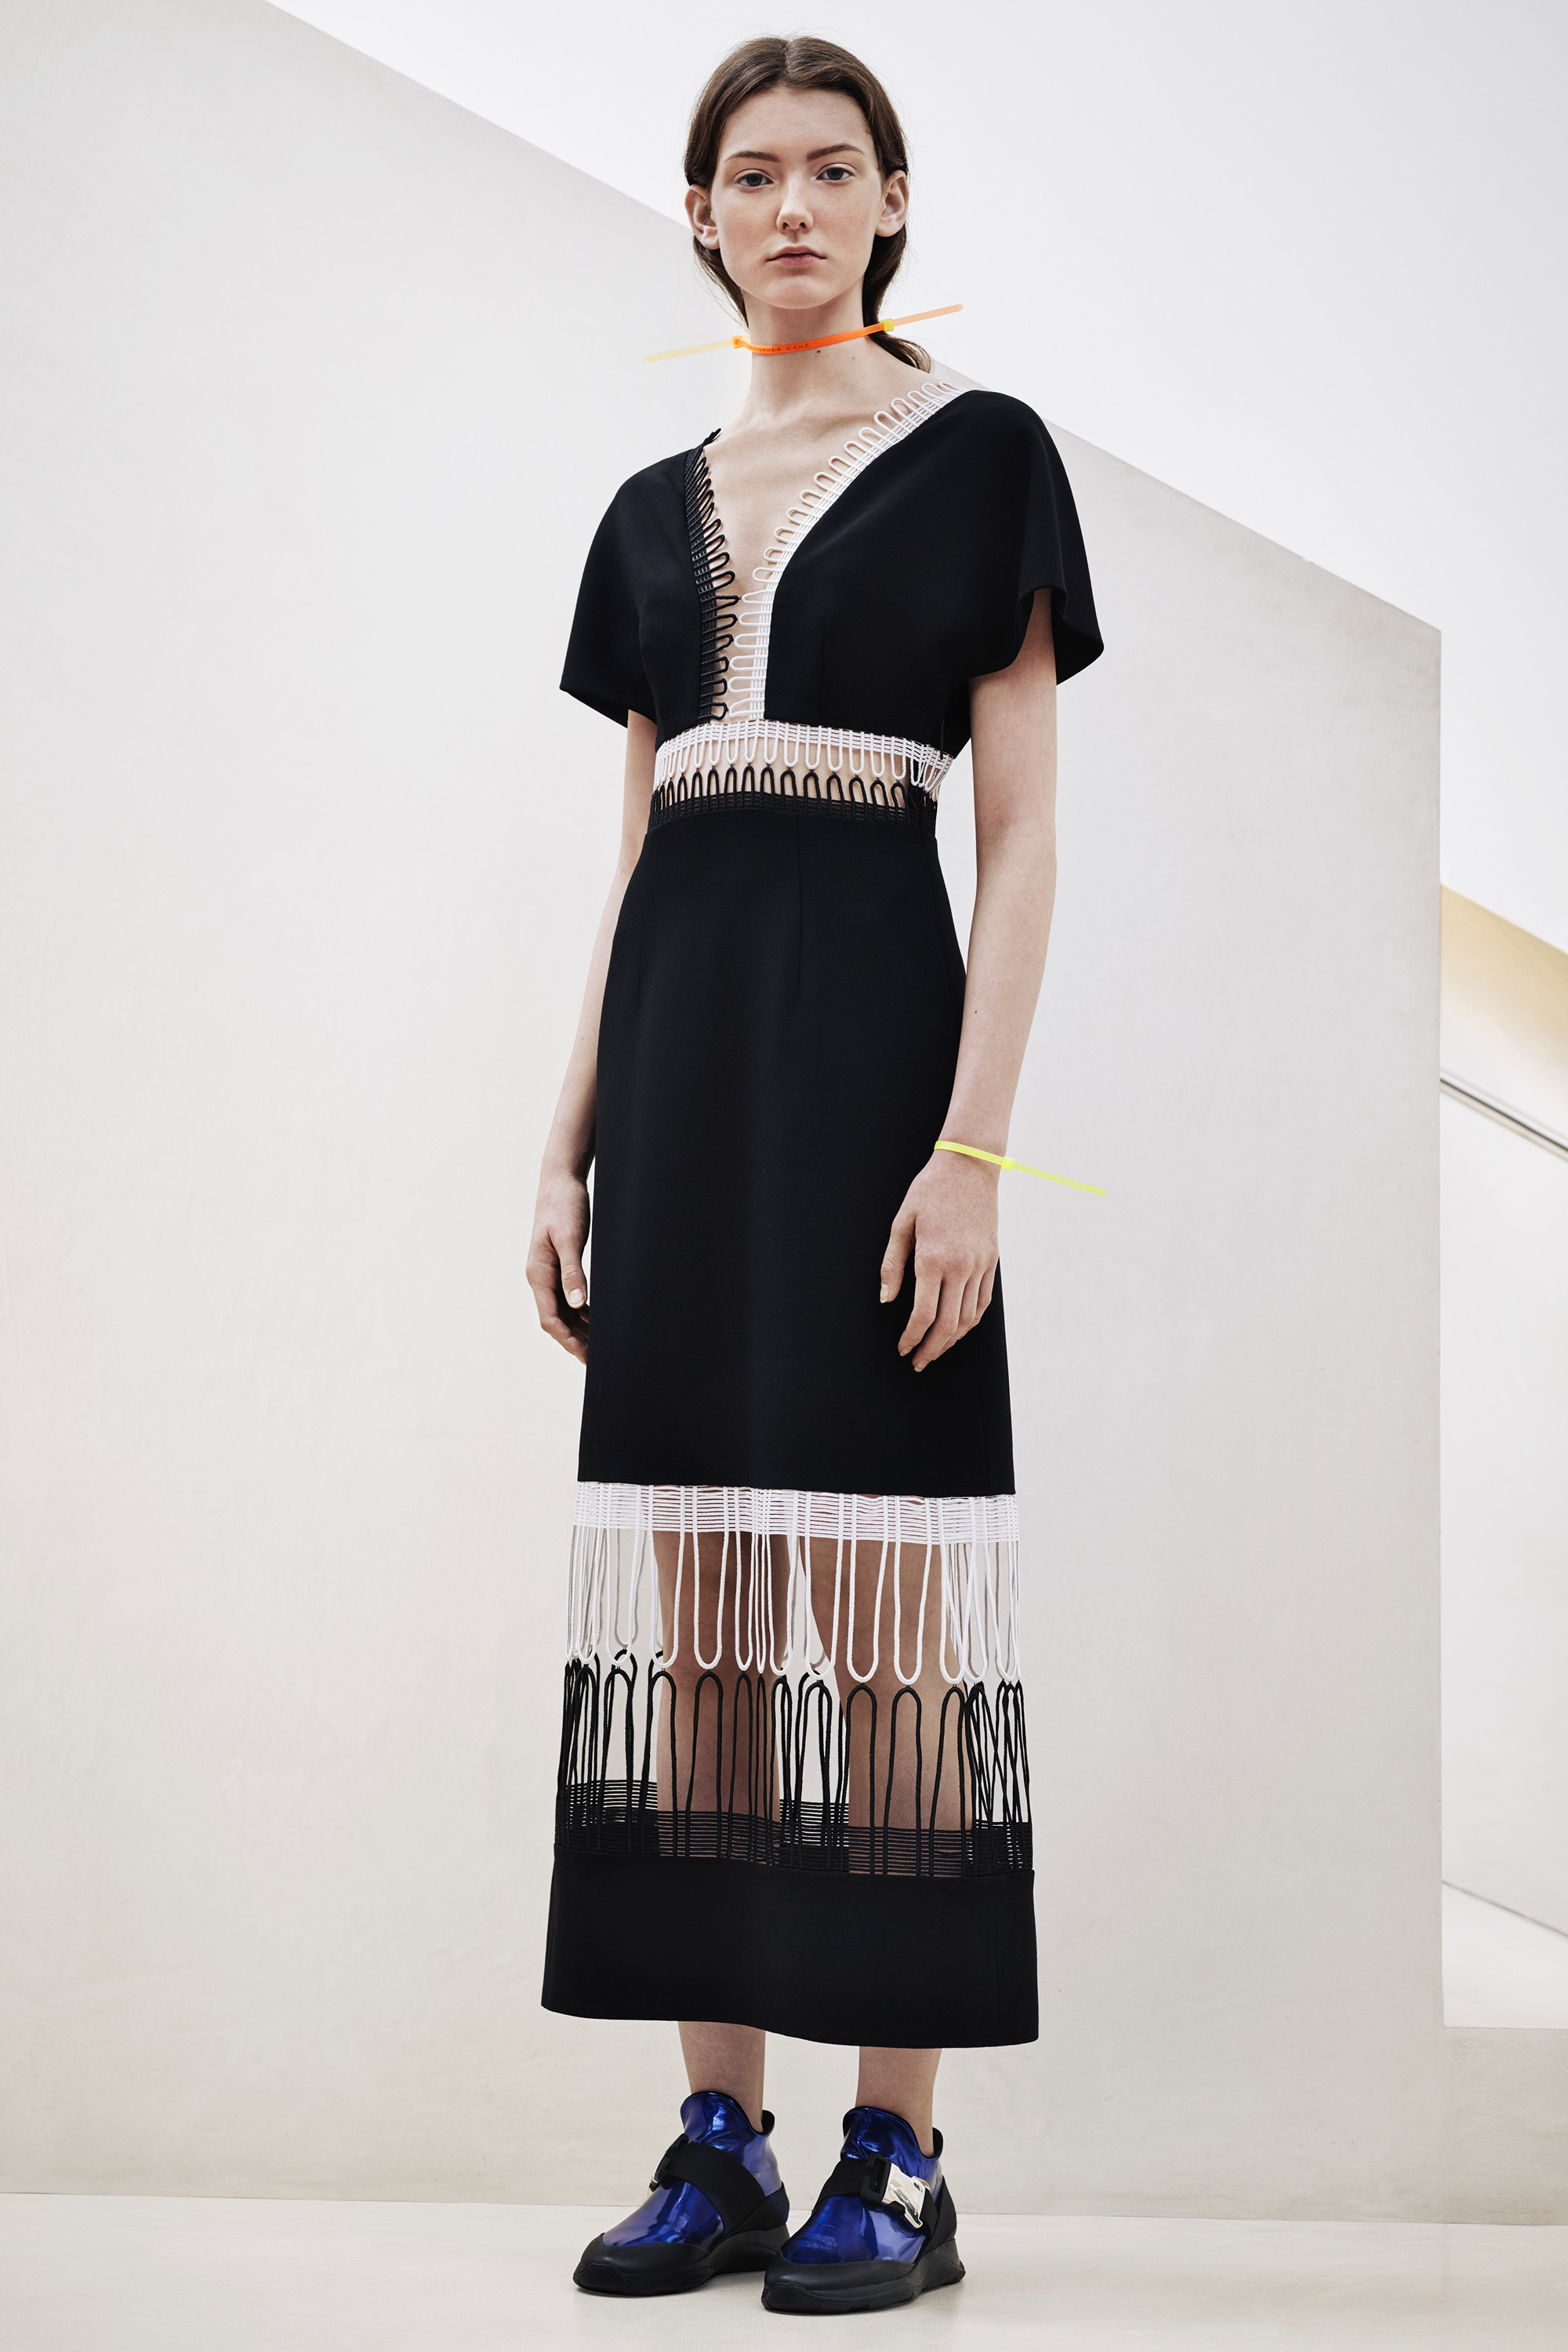 christopher-kane-pre-fall-2016-lookbook-02.jpg